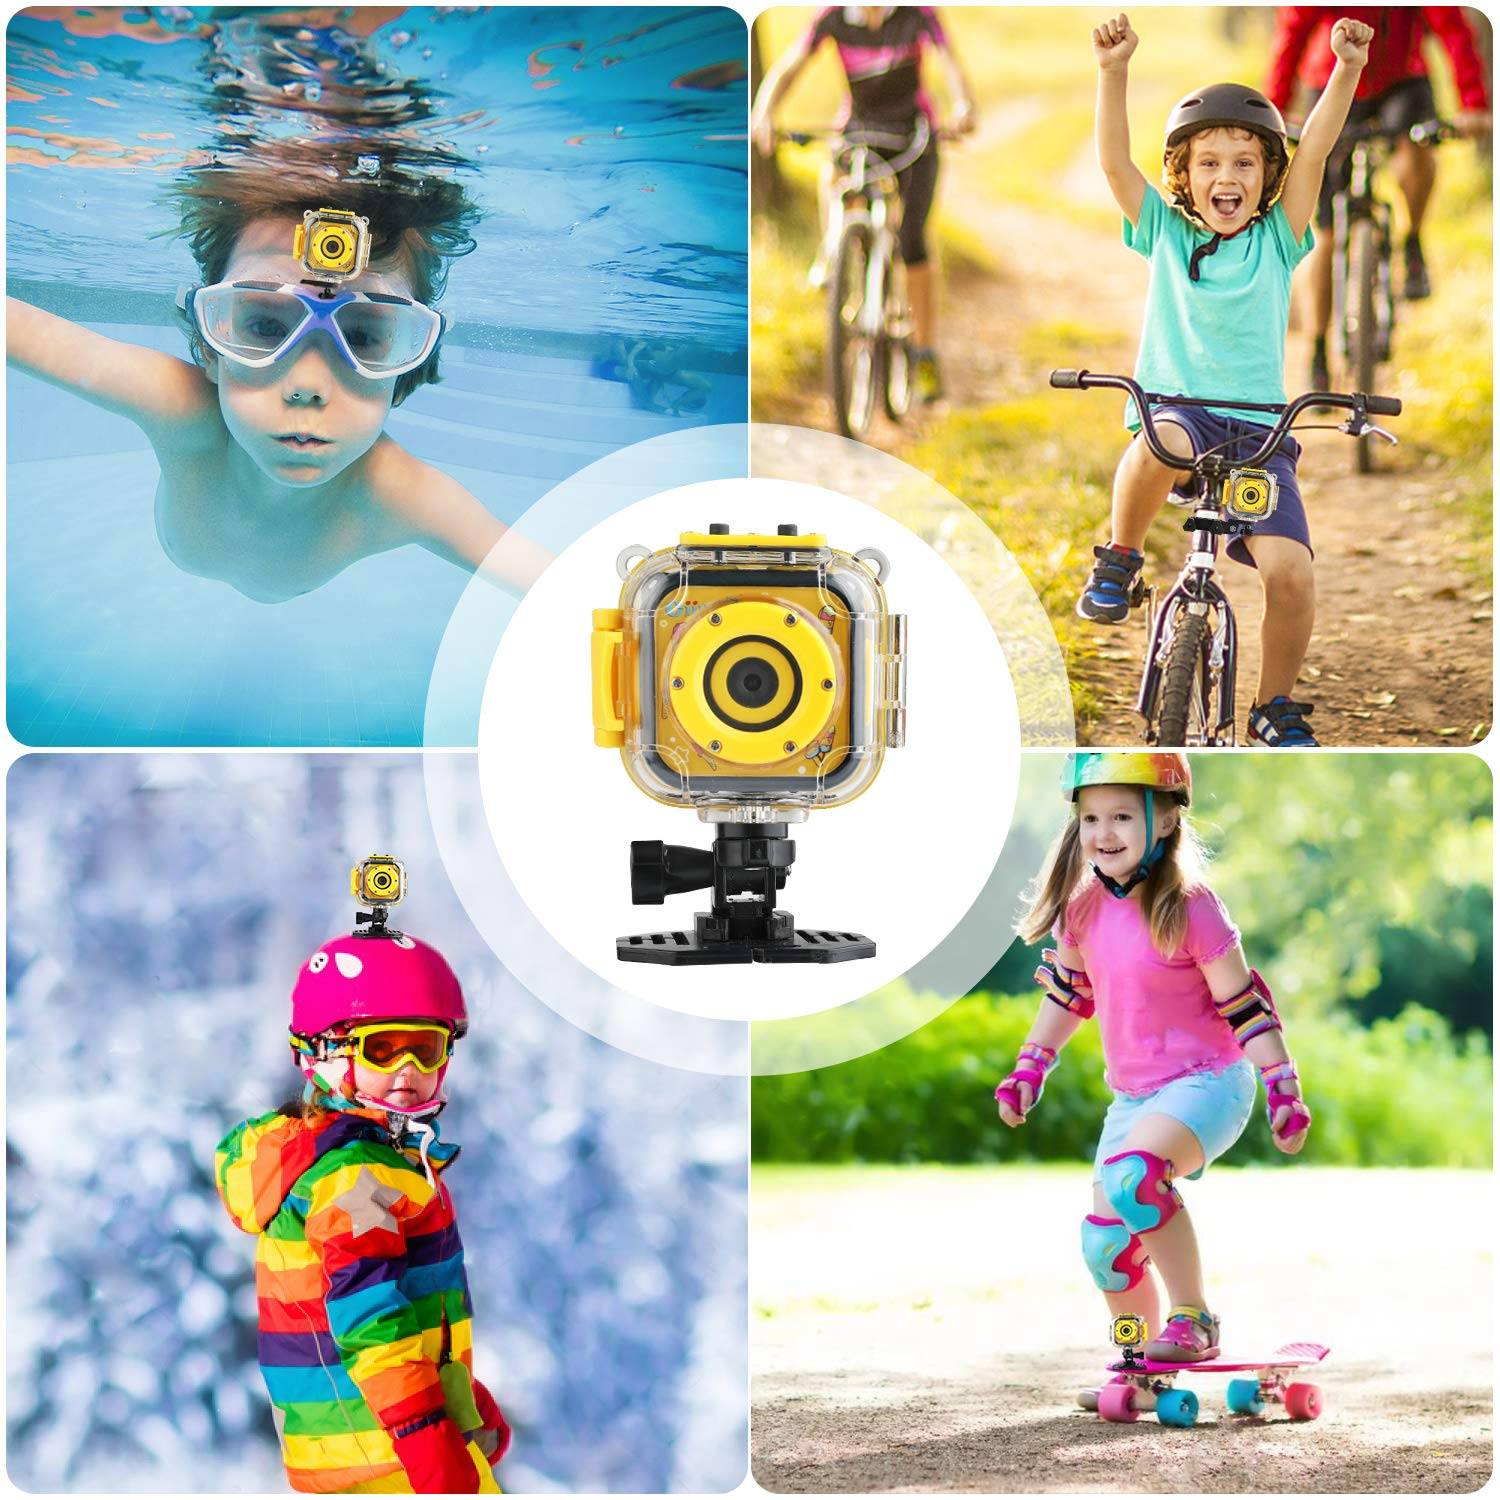 Kids Camera, Oiiwak Kids Video Camera Waterproof Toys for 3-10 Year Old Girls, 5.0 MP HD Digital Mini Camcorder for Children with 32GB Memory Card by Oiiwak (Image #7)